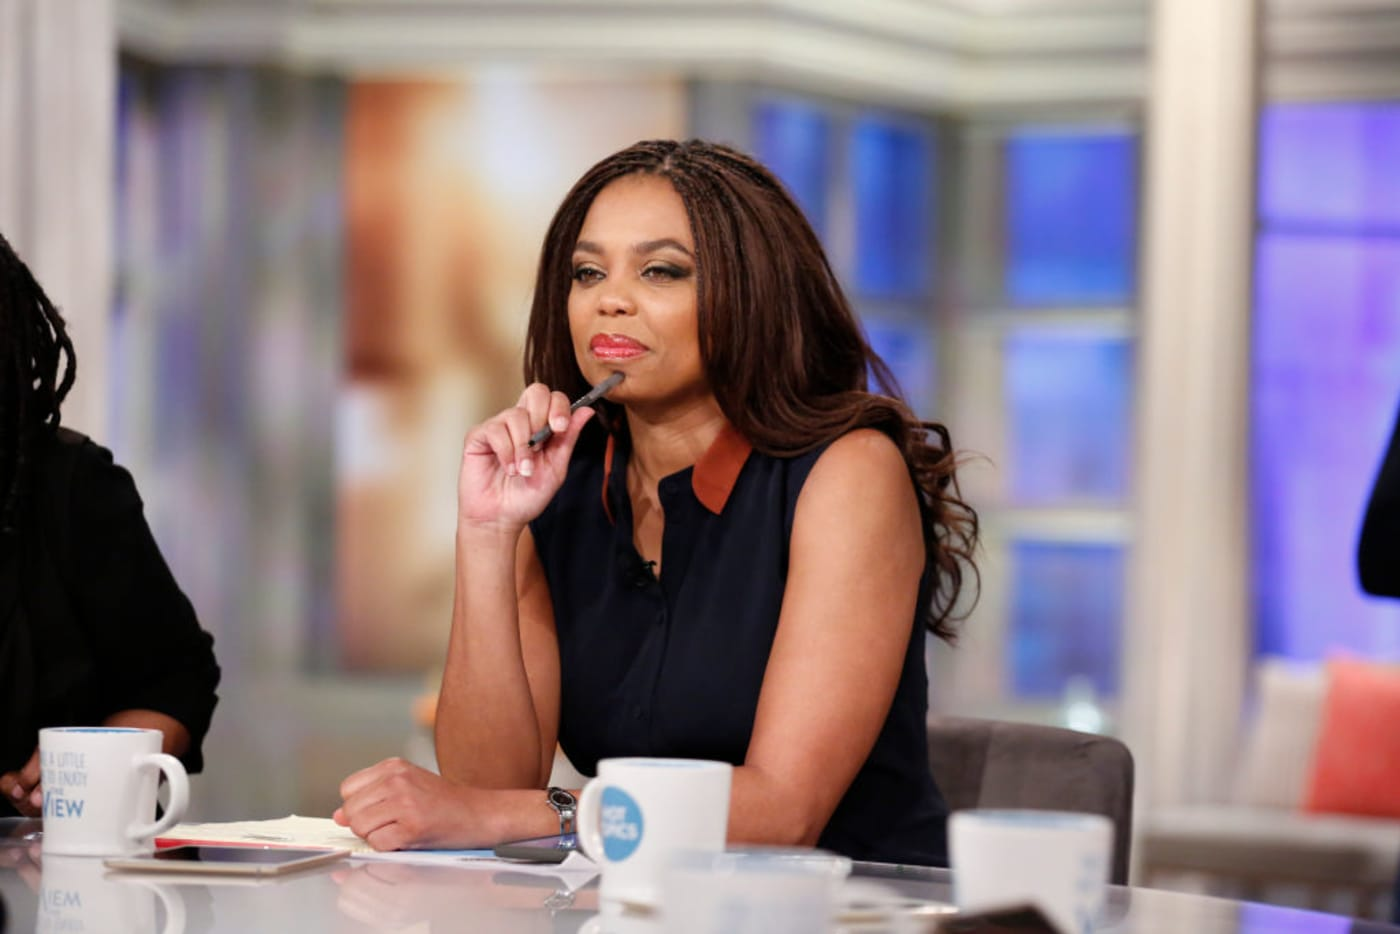 Jemele Hill The View 2018 Getty